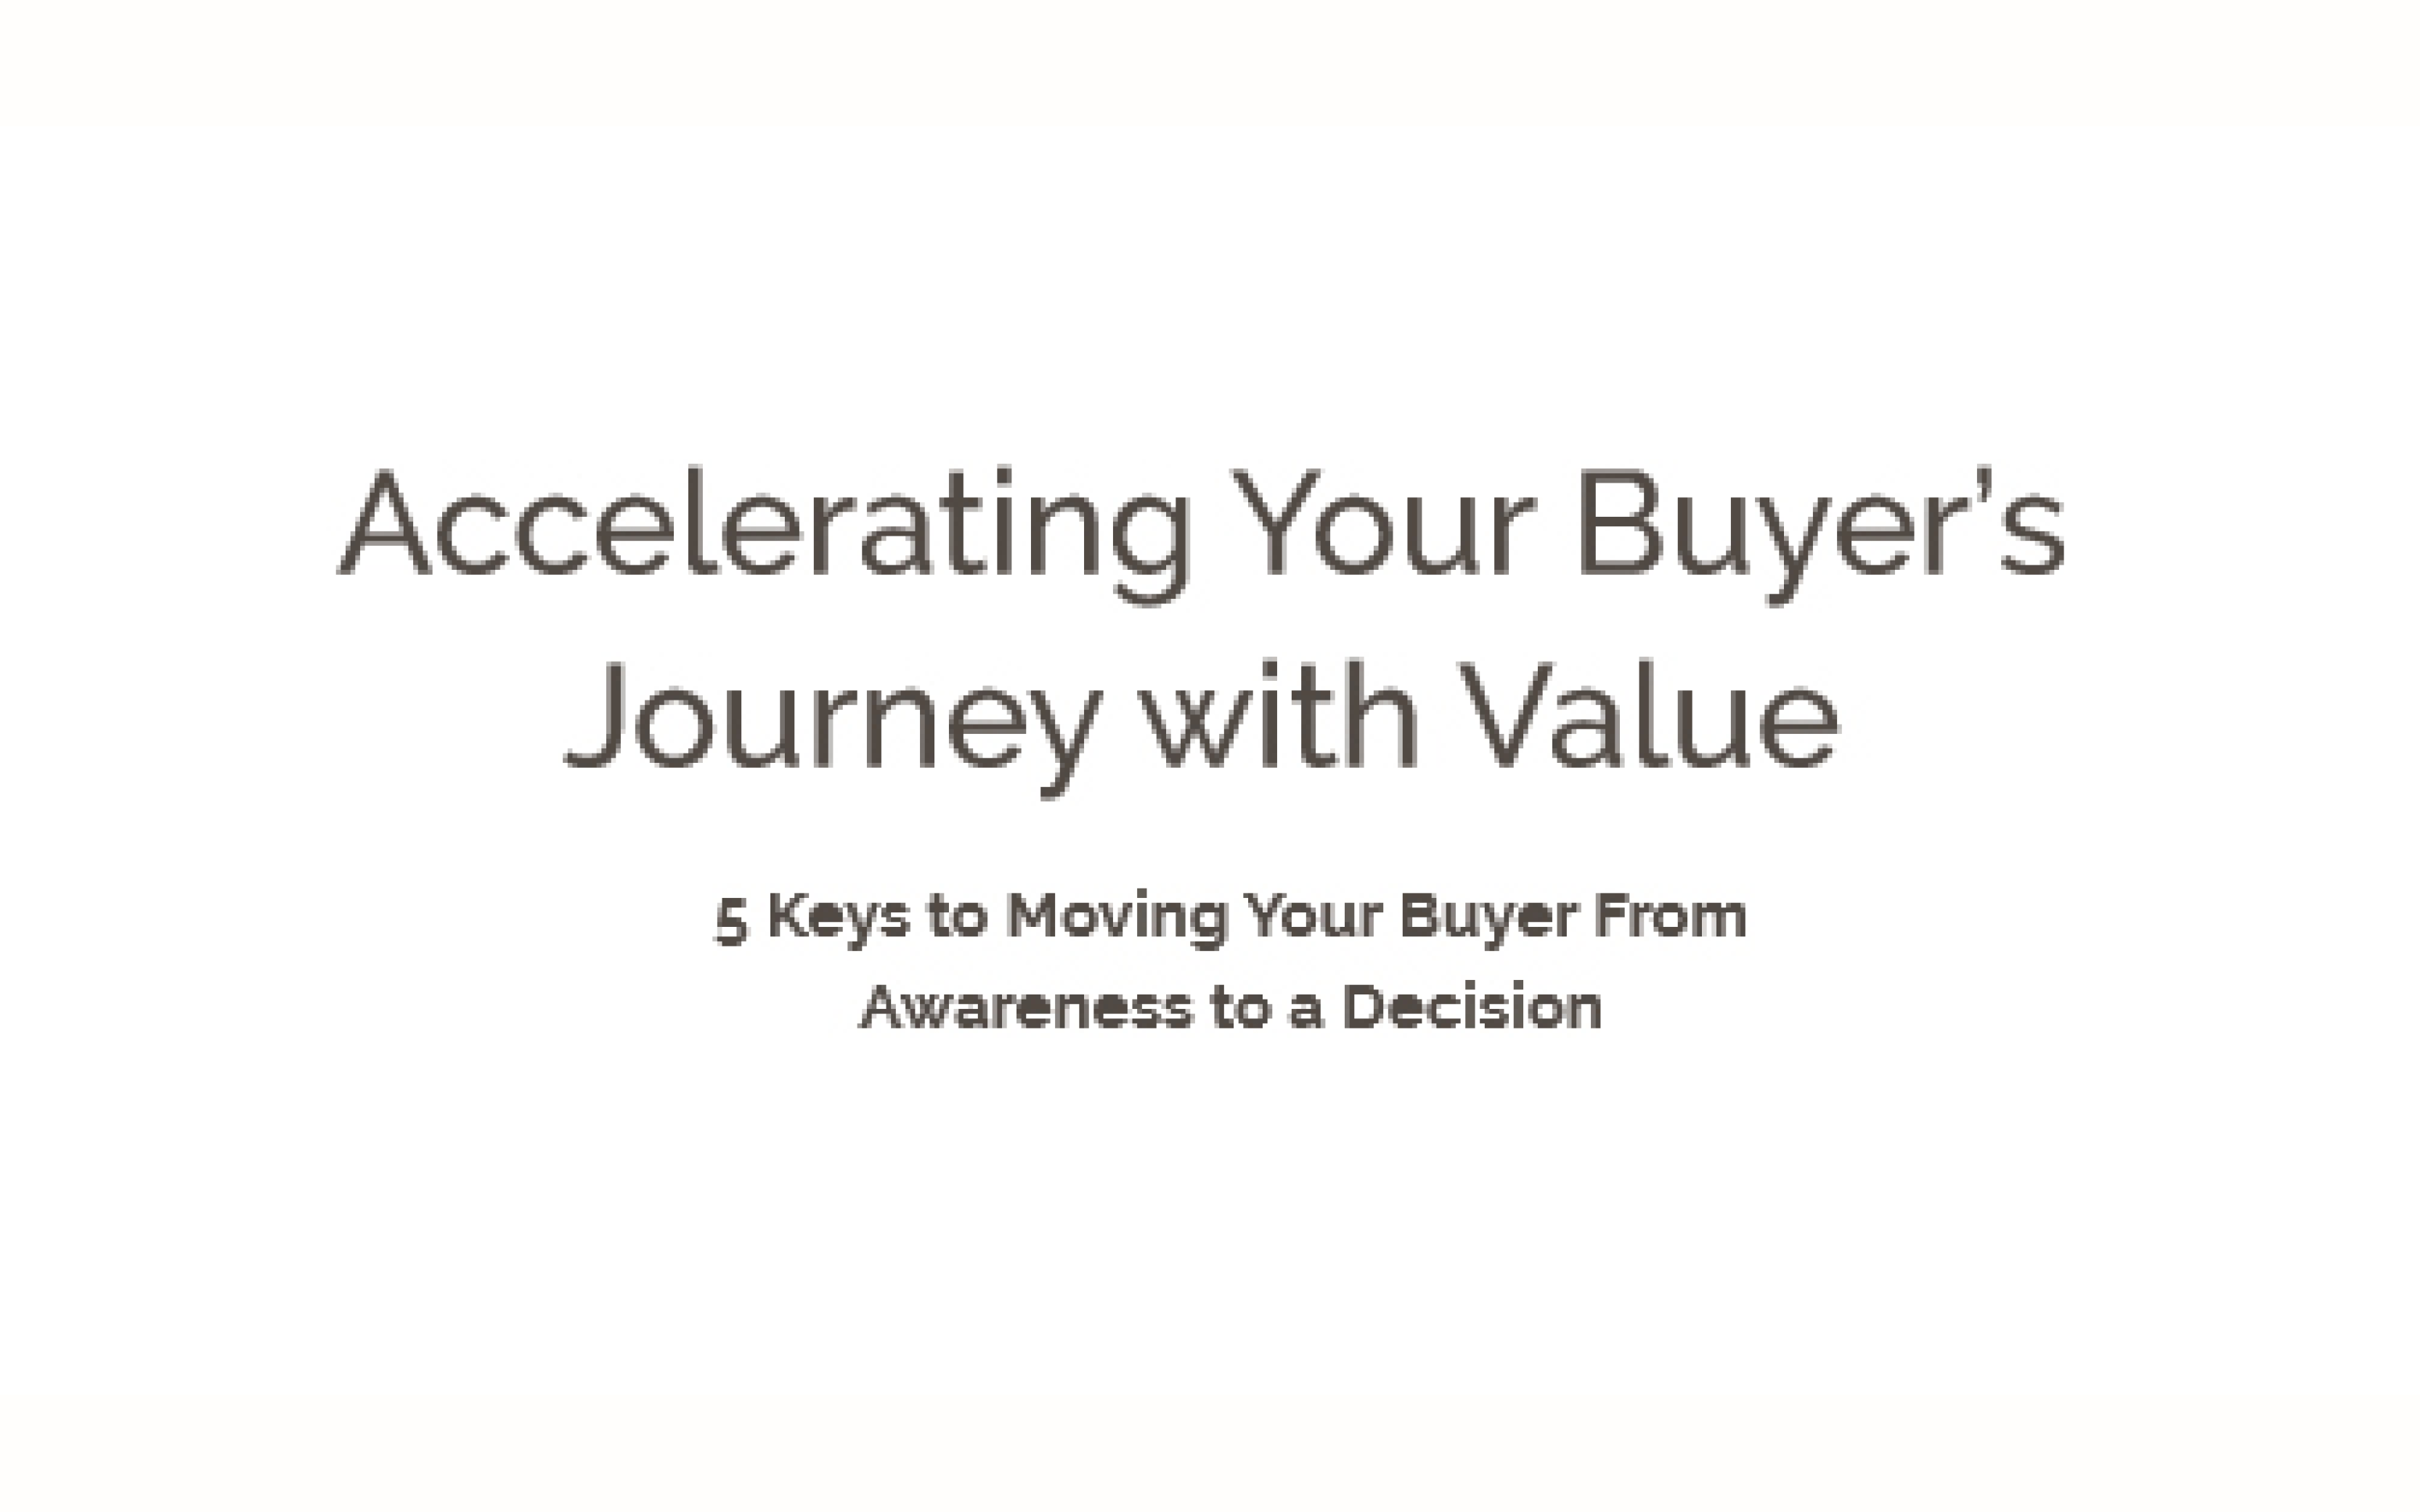 Report: Accelerating Your Buyer's Journey With Value